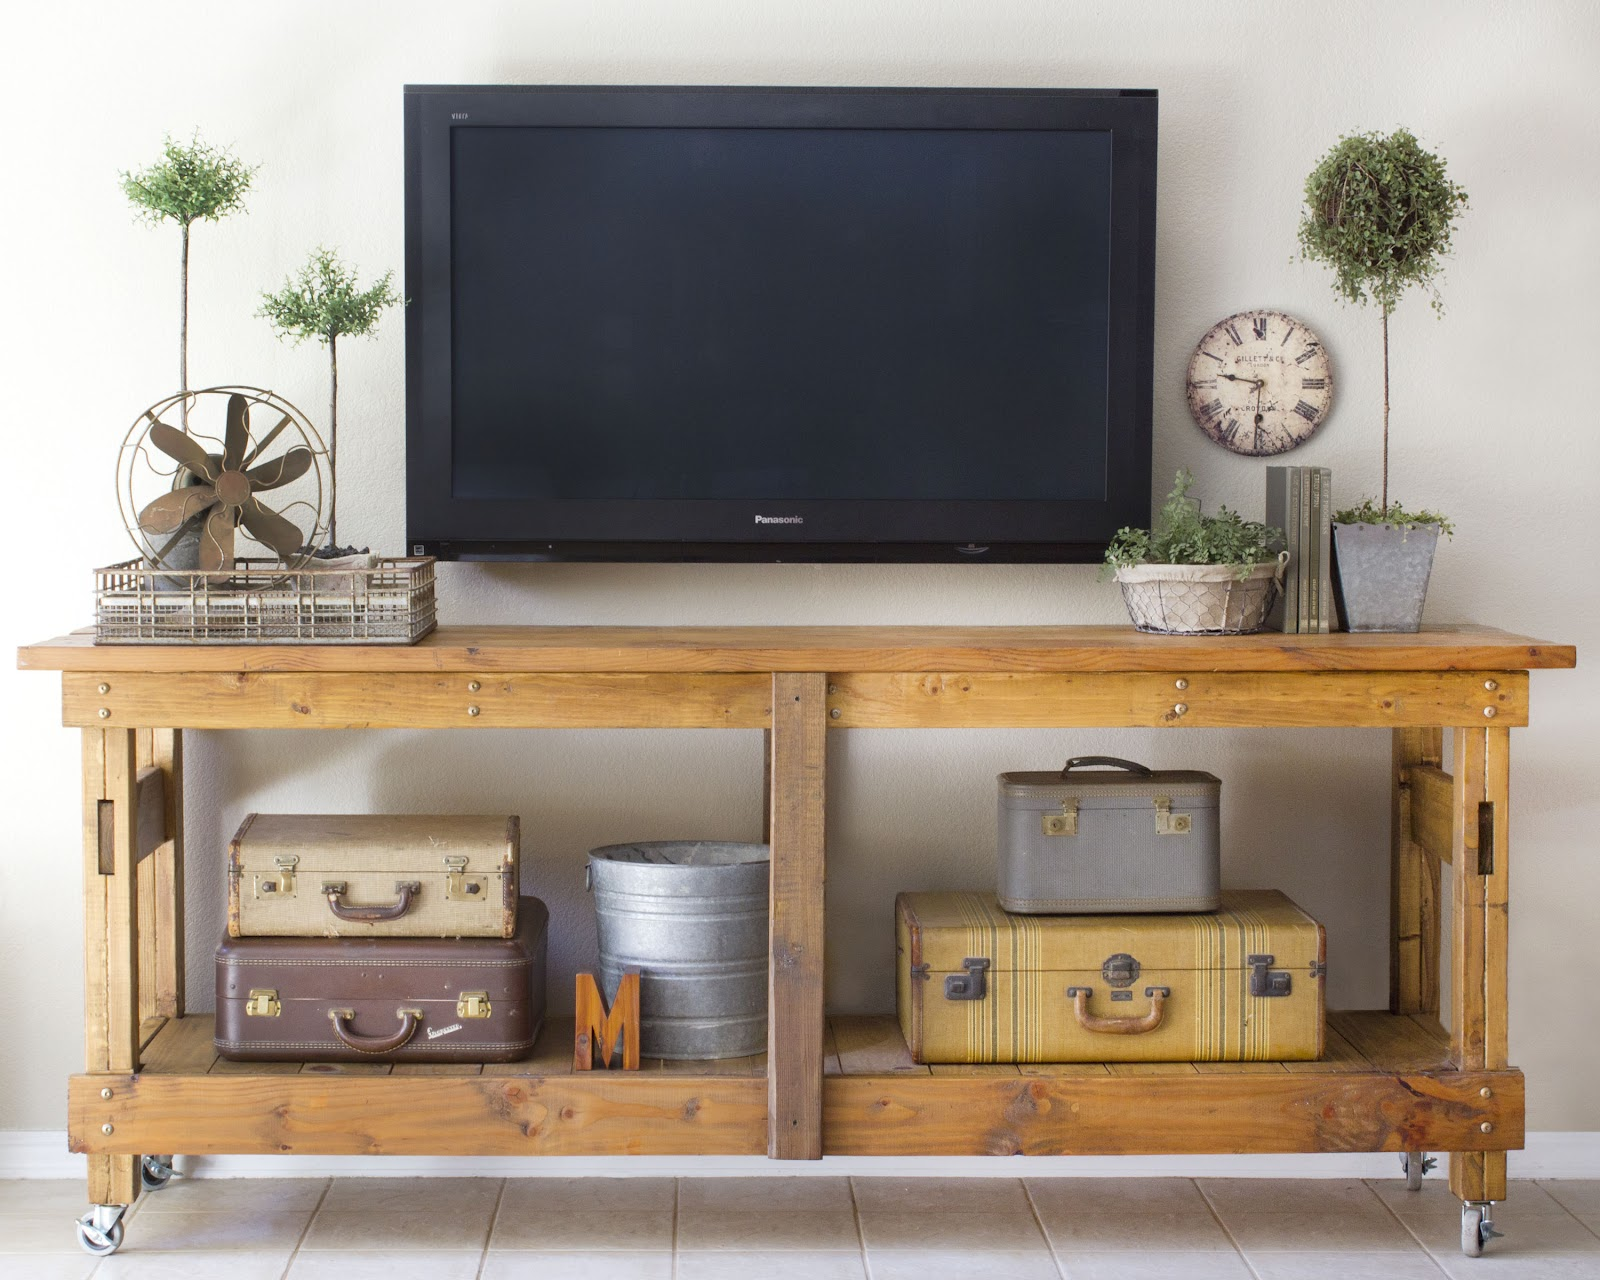 Tv On The Wall Ideas Remodelaholic  95 Ways To Hide Or Decorate Around The Tv